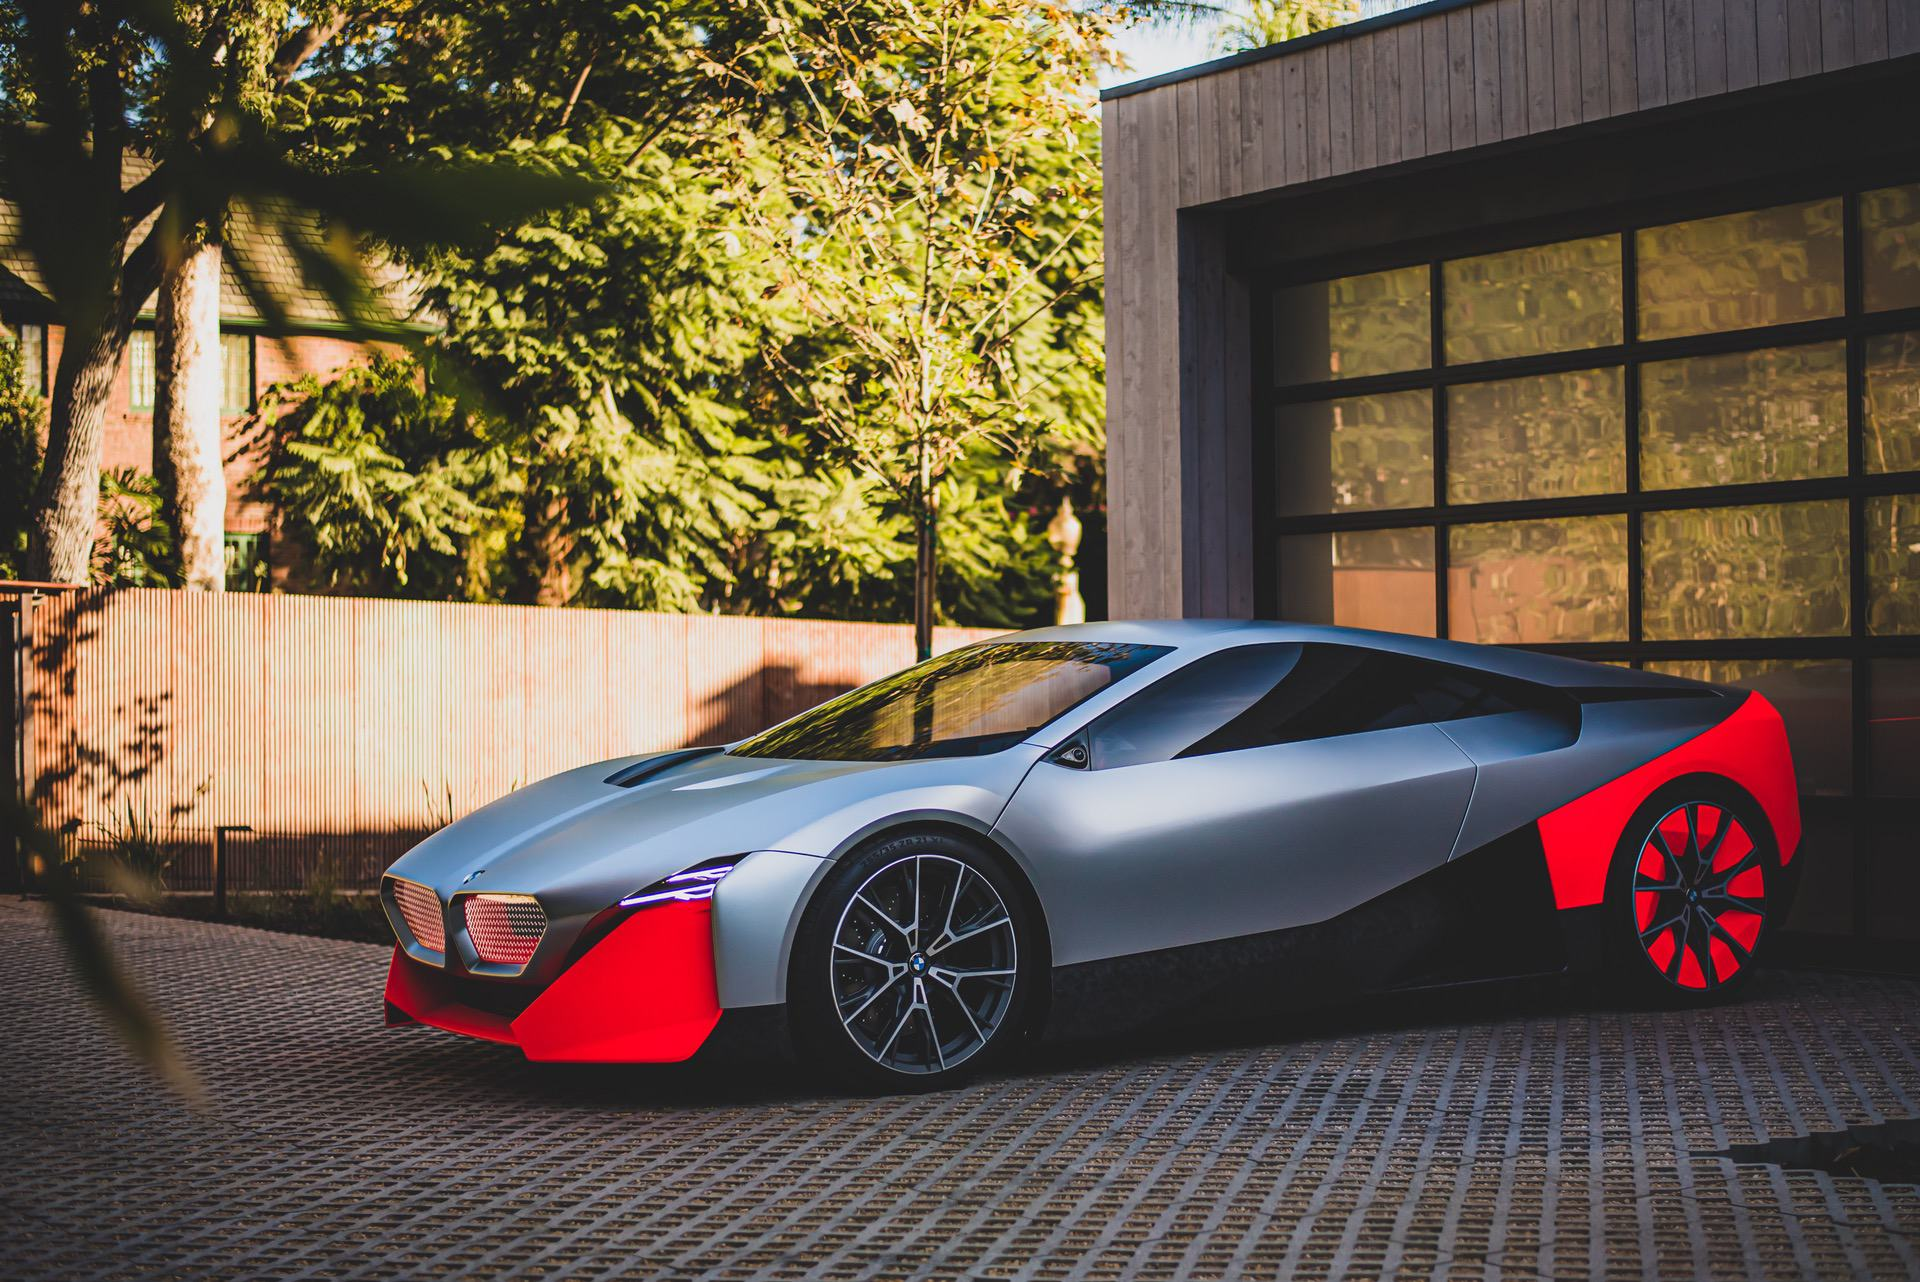 OPINION: iNEXT, M Next supercar and X8 are the pillars of BMW's overhaul